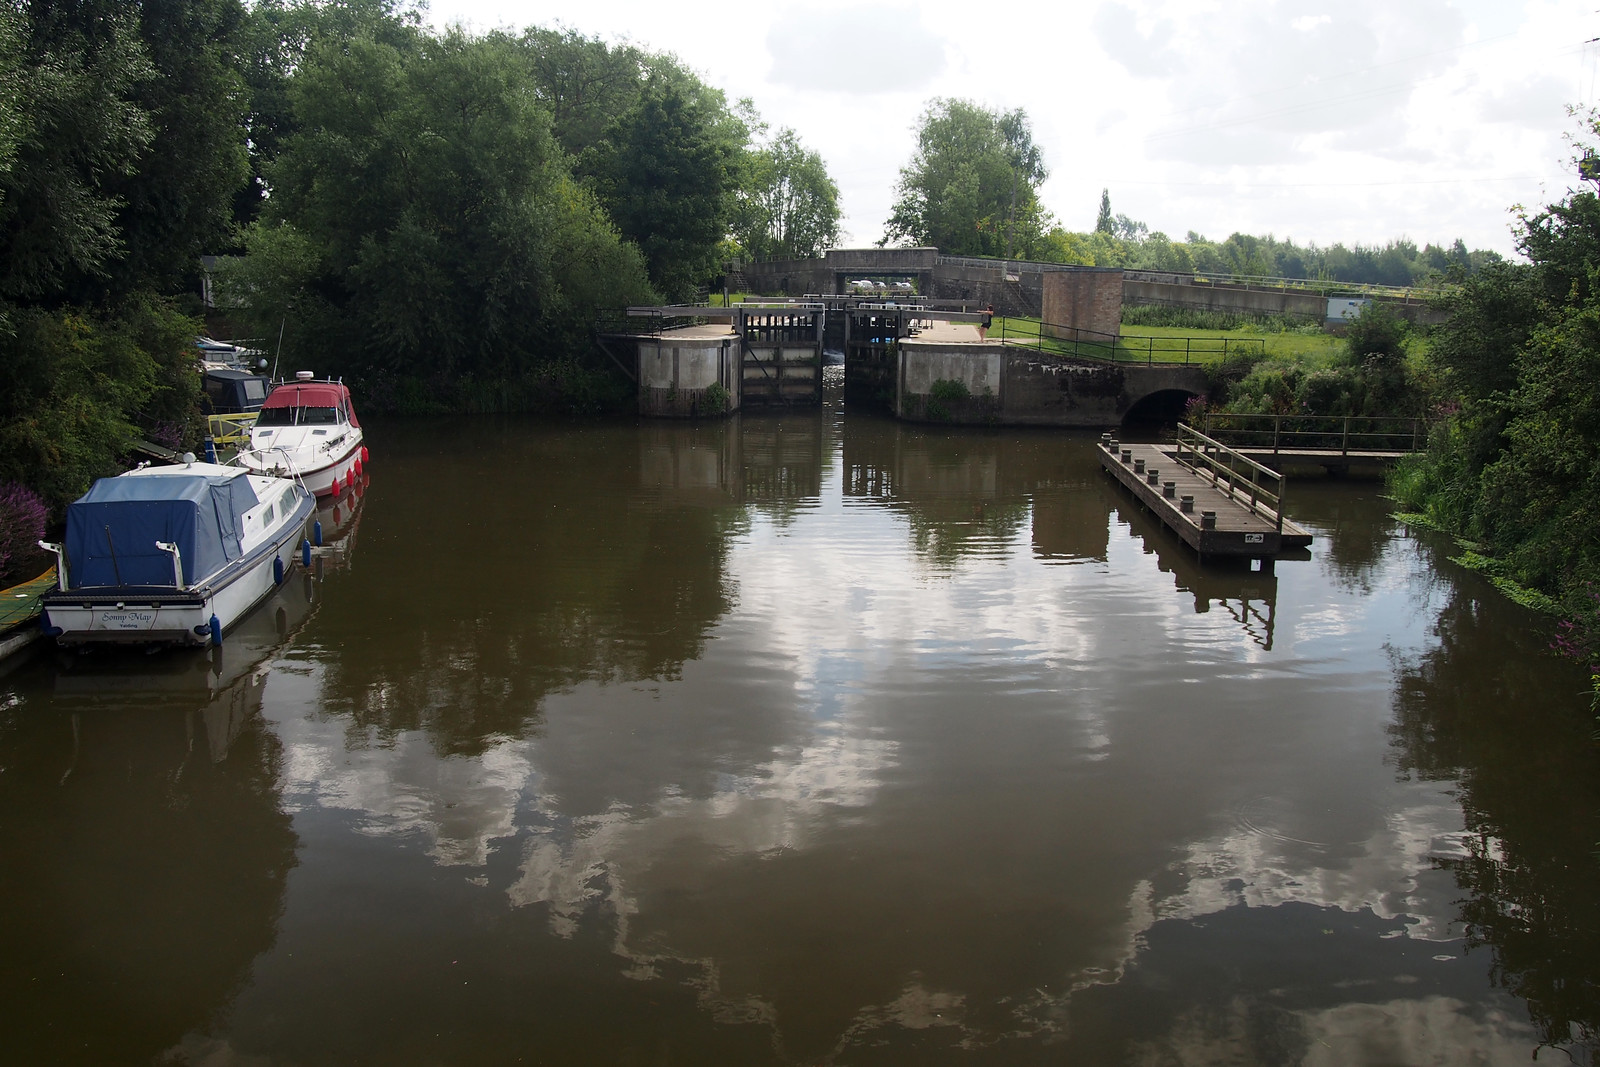 The Medway at Yalding